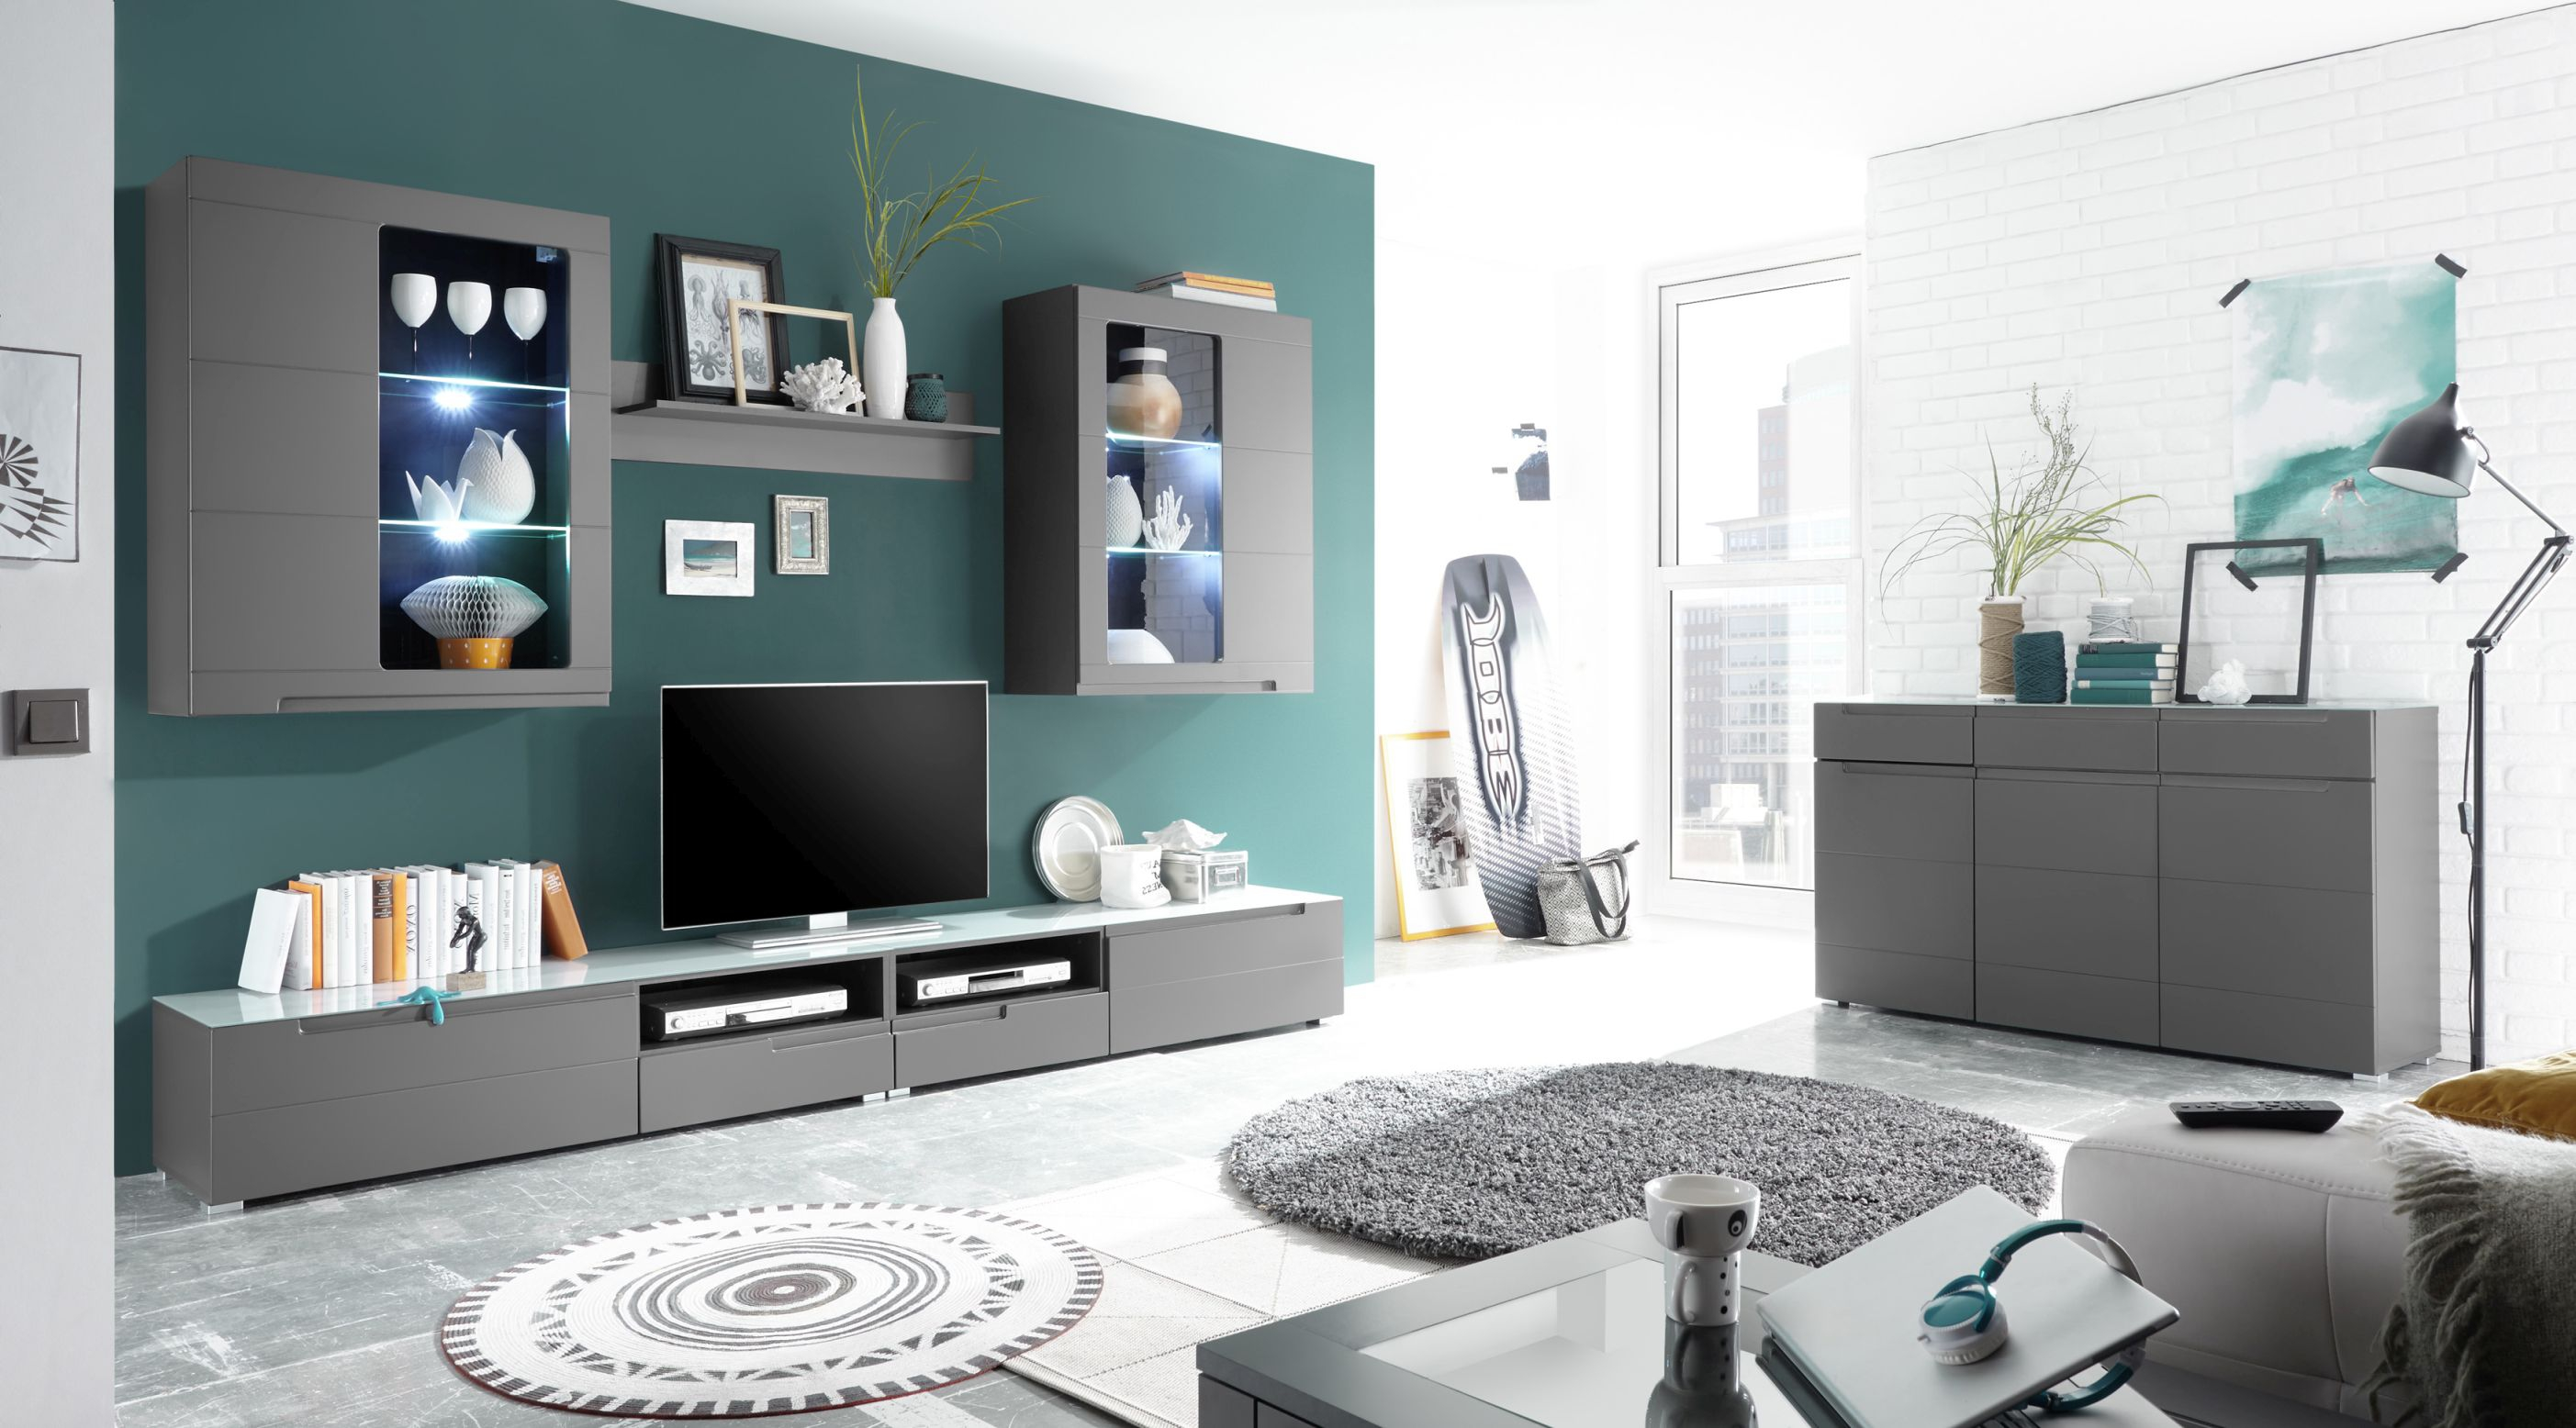 wohnwand wohnzimmer set 6 tlg grau matt sideboard. Black Bedroom Furniture Sets. Home Design Ideas